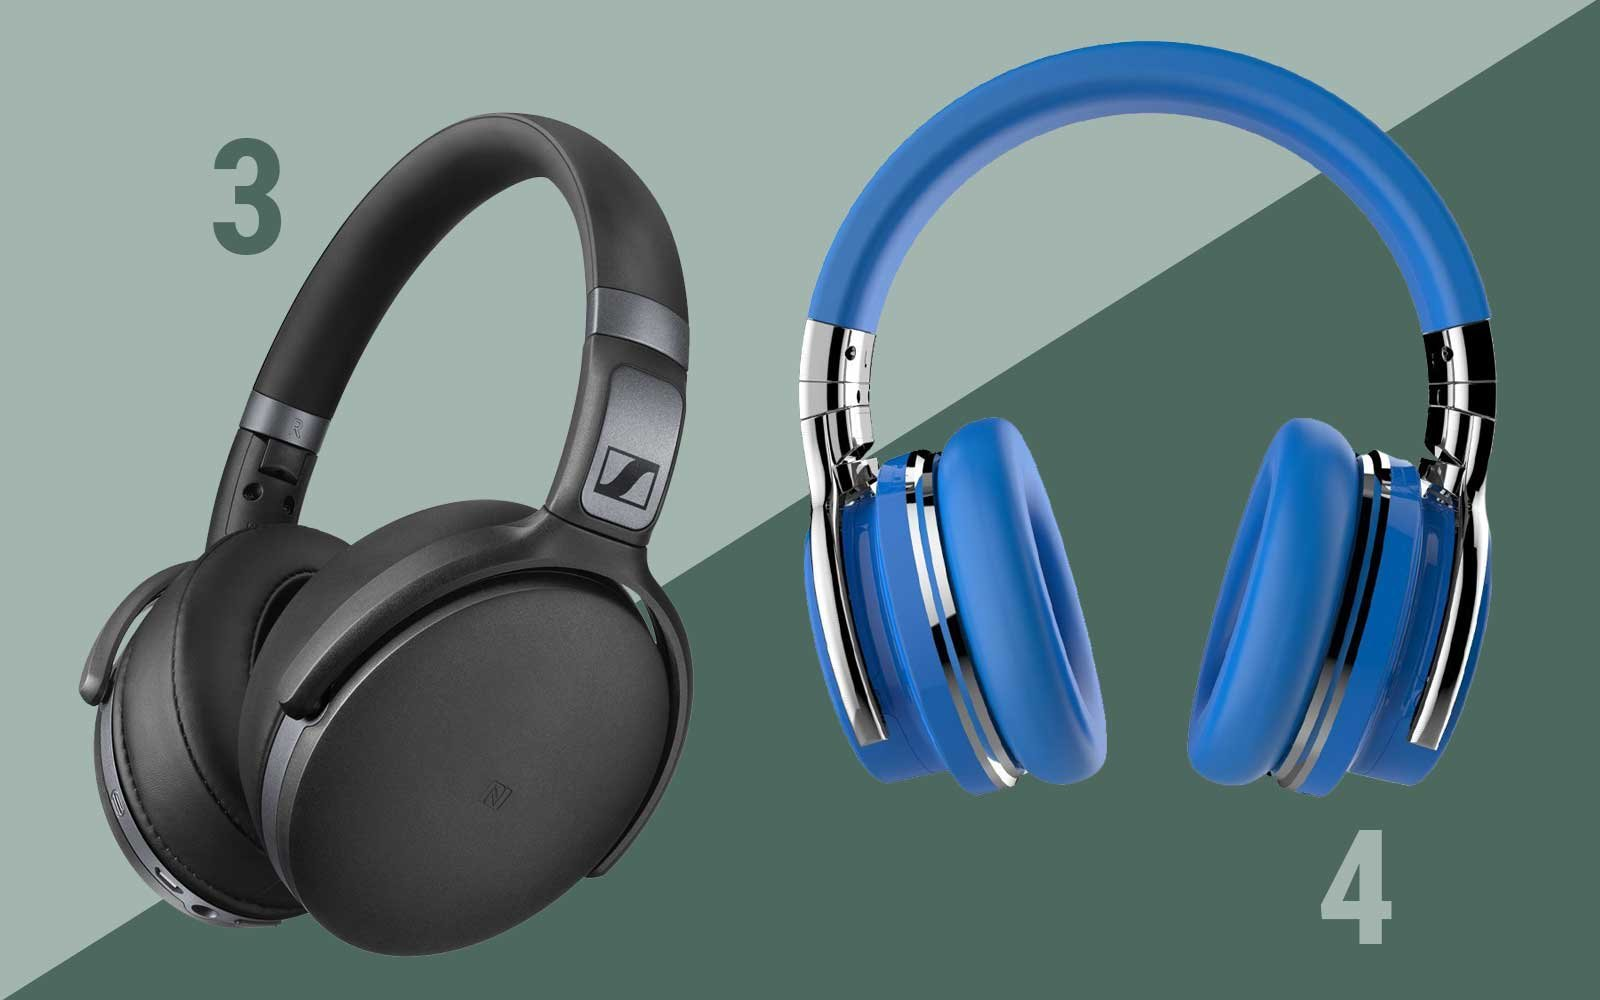 df32e2ad385 The Best Bluetooth Wireless Headphones | Travel + Leisure